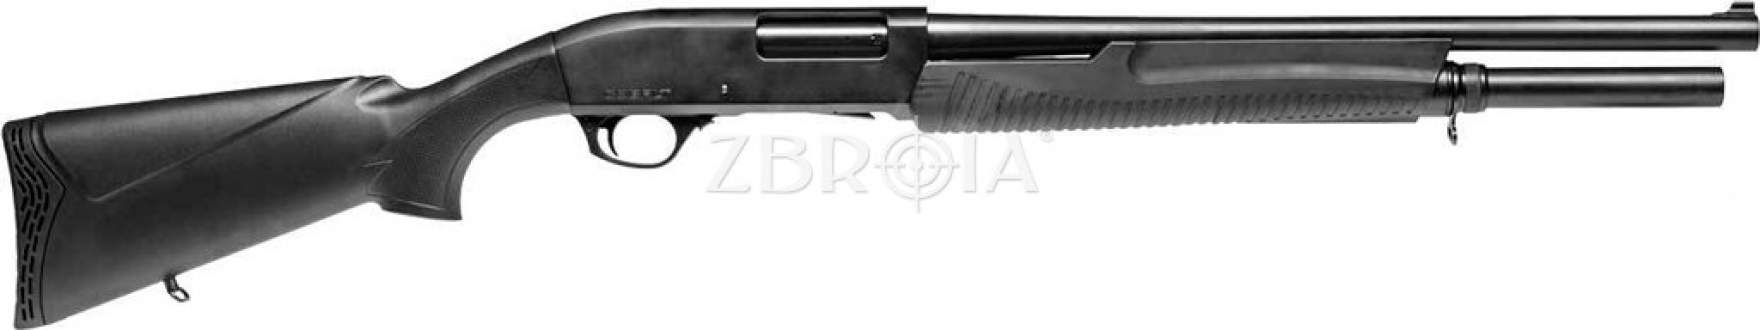 Ружье Cobalt P20 Pump Action кал. 12/76